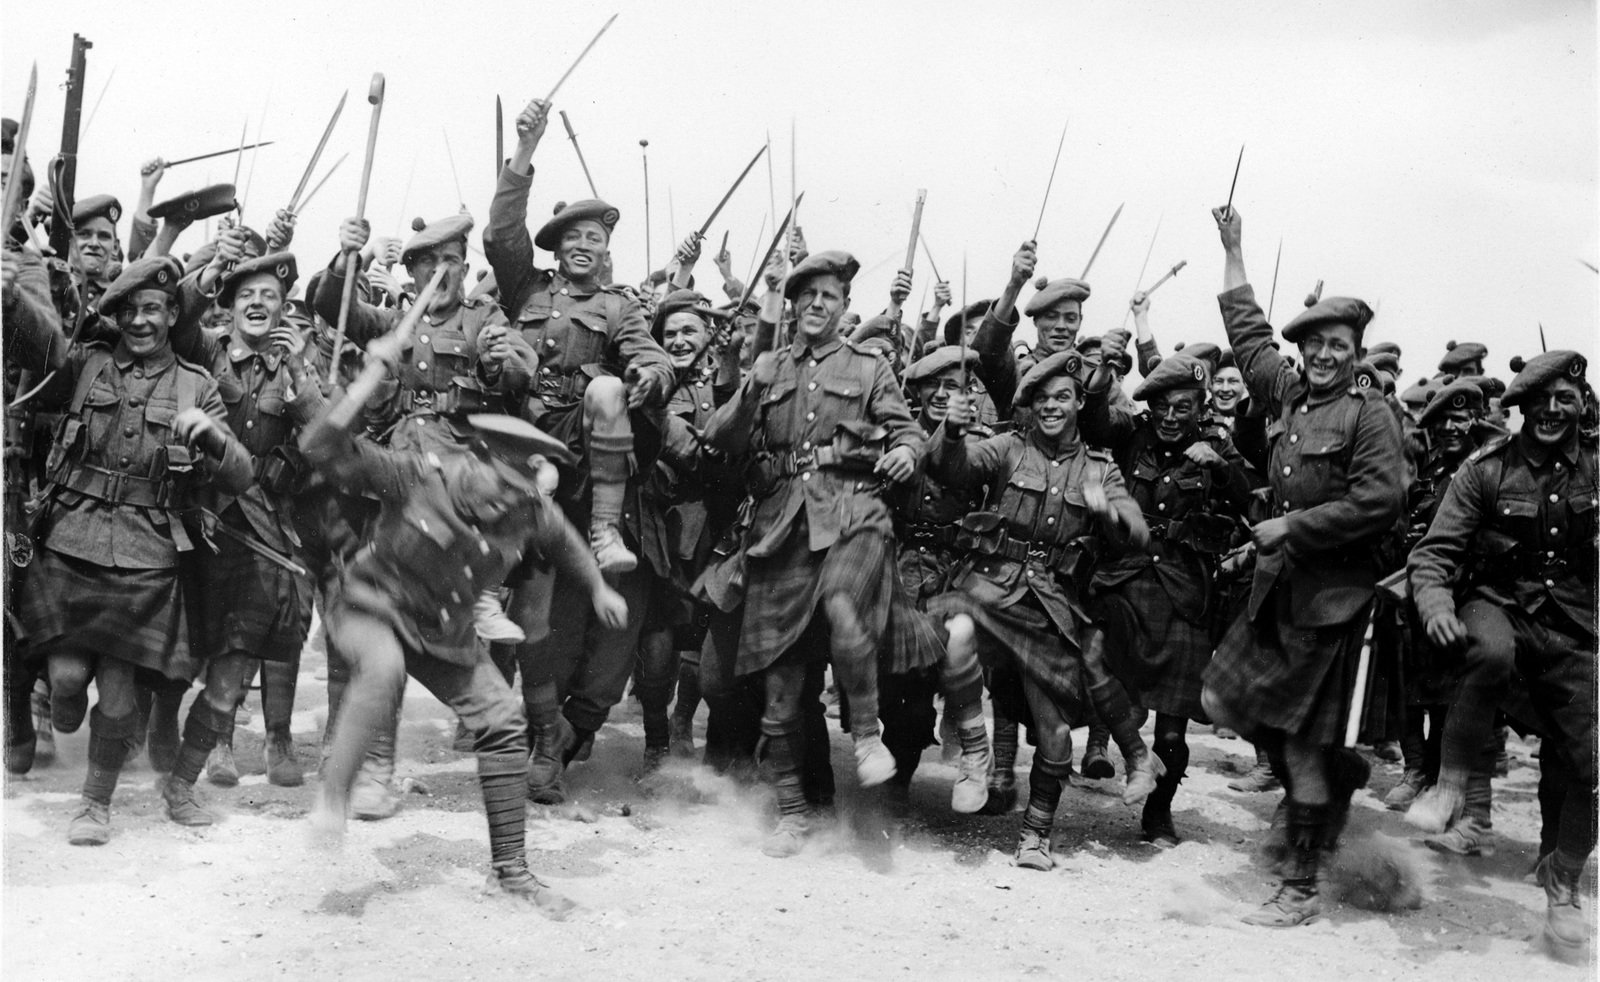 South African Infantry in their glory, 1914-1920, , National Library of Scotland, CC BY-NC-SA